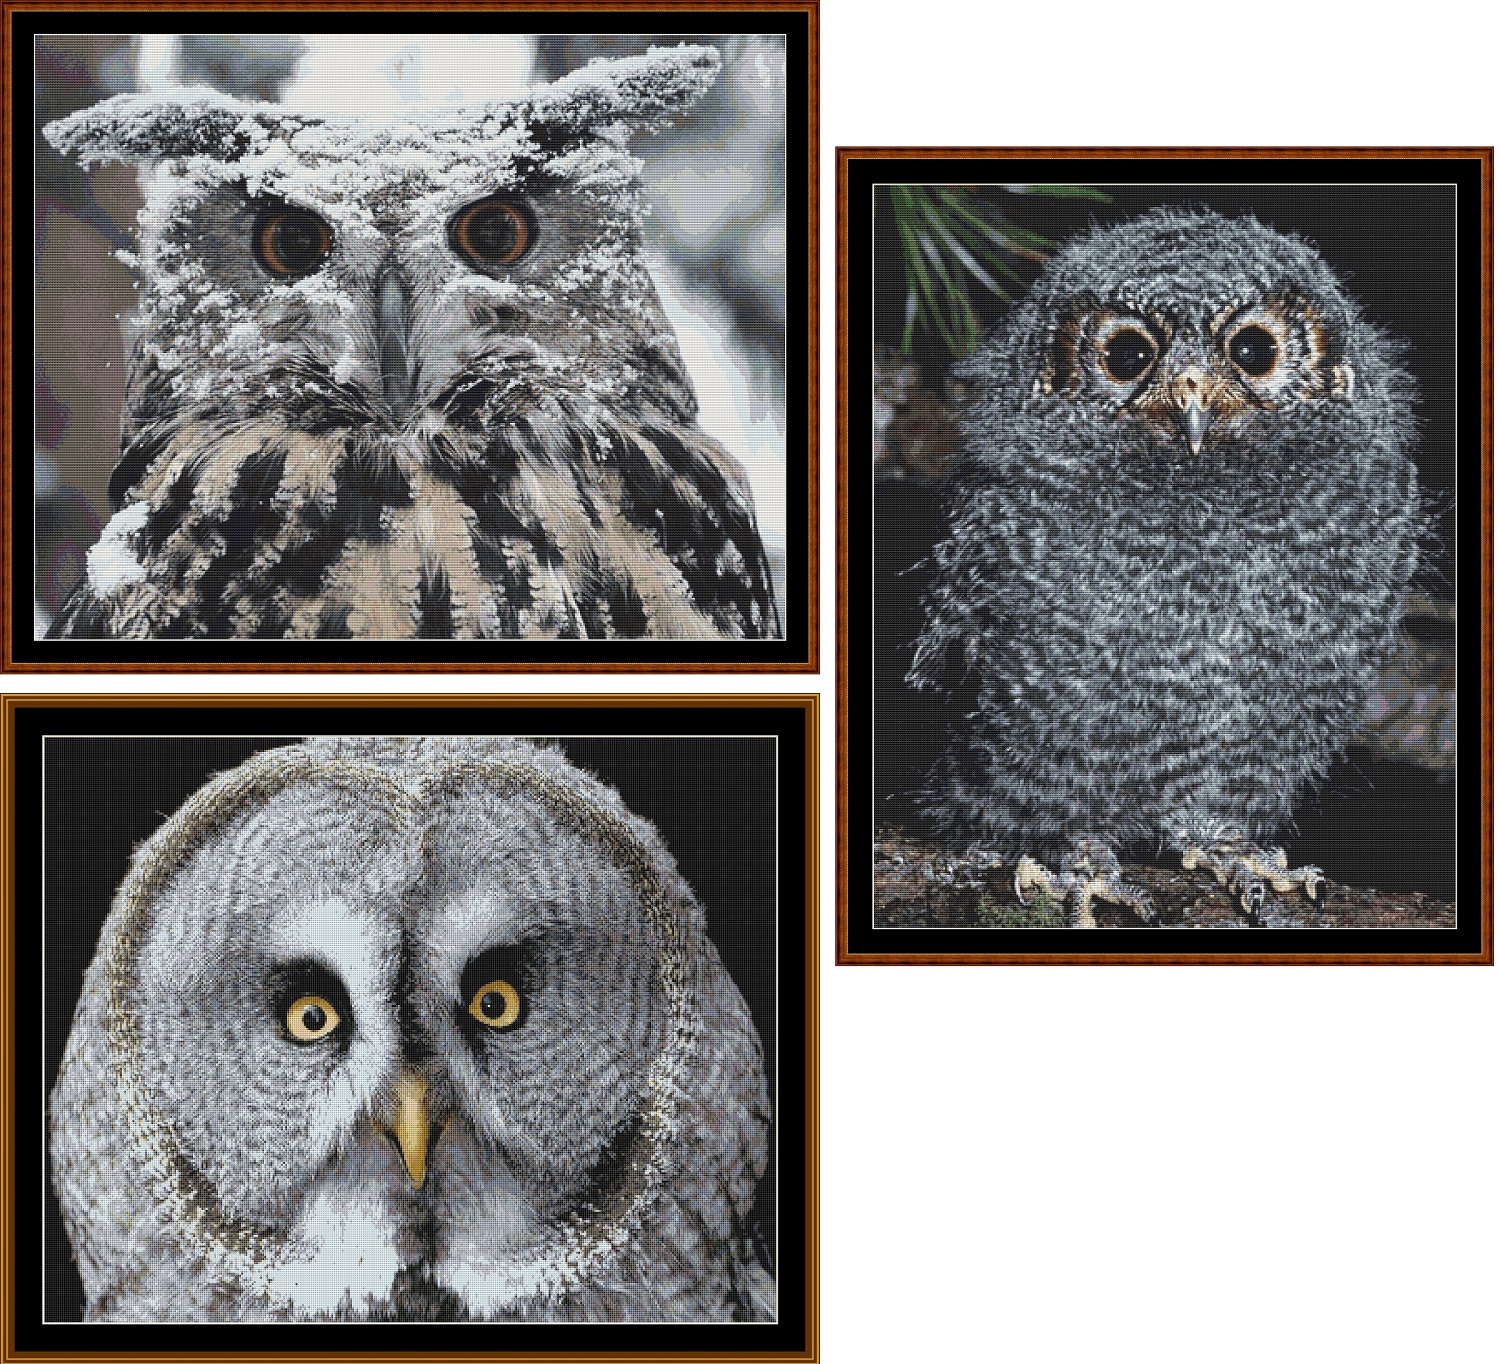 3 Wise Owls Cross Stitch pack - 3 charts